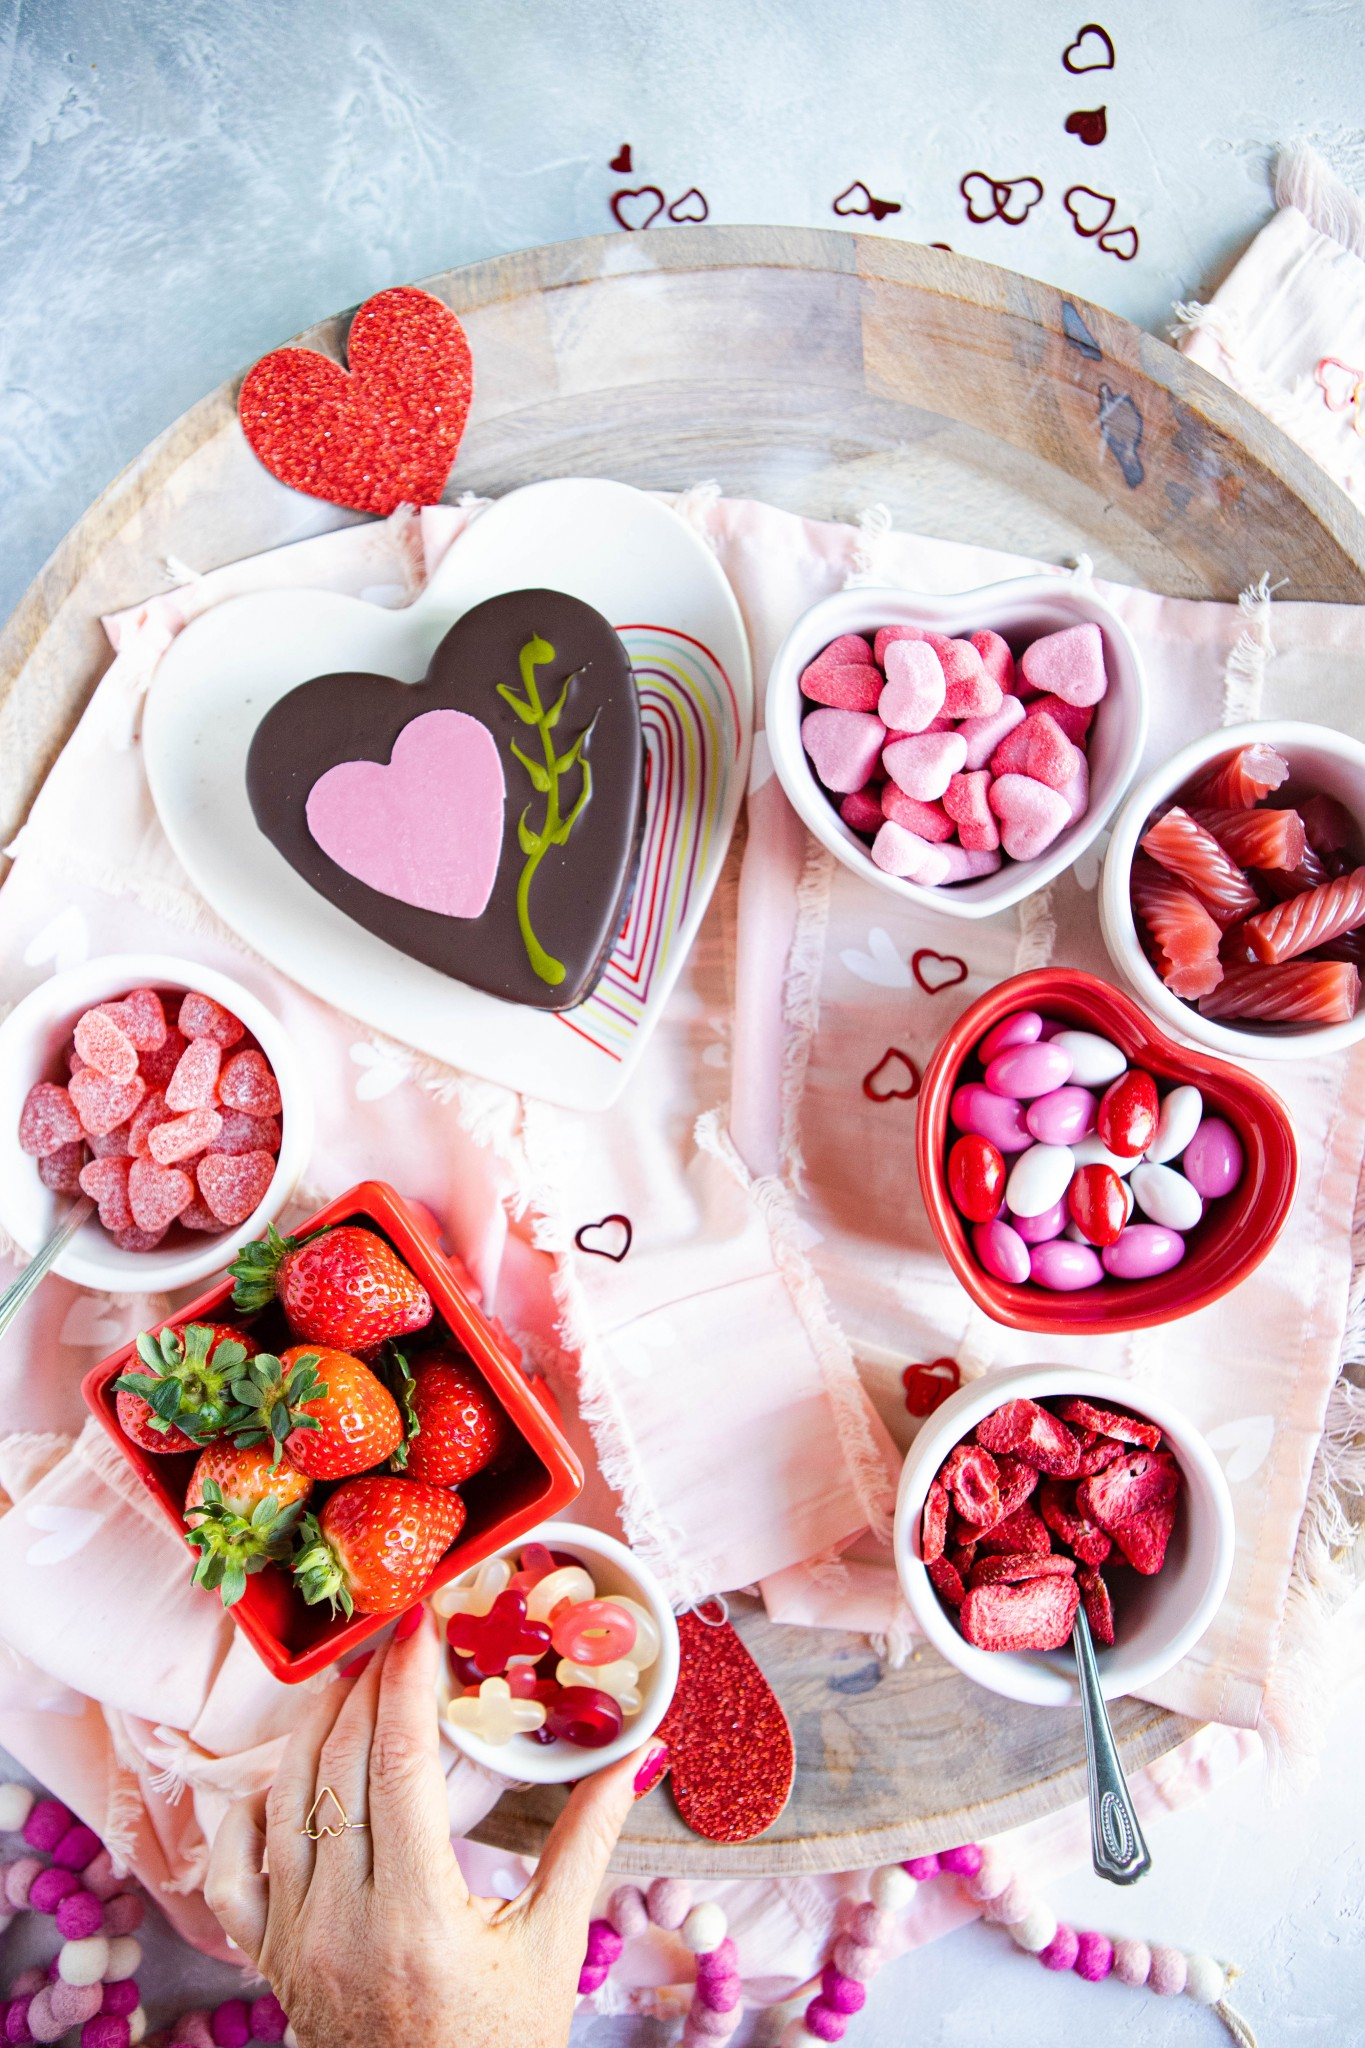 woman's hand placing Valentine's day candy on a wooden tray, surrounded by other sweets